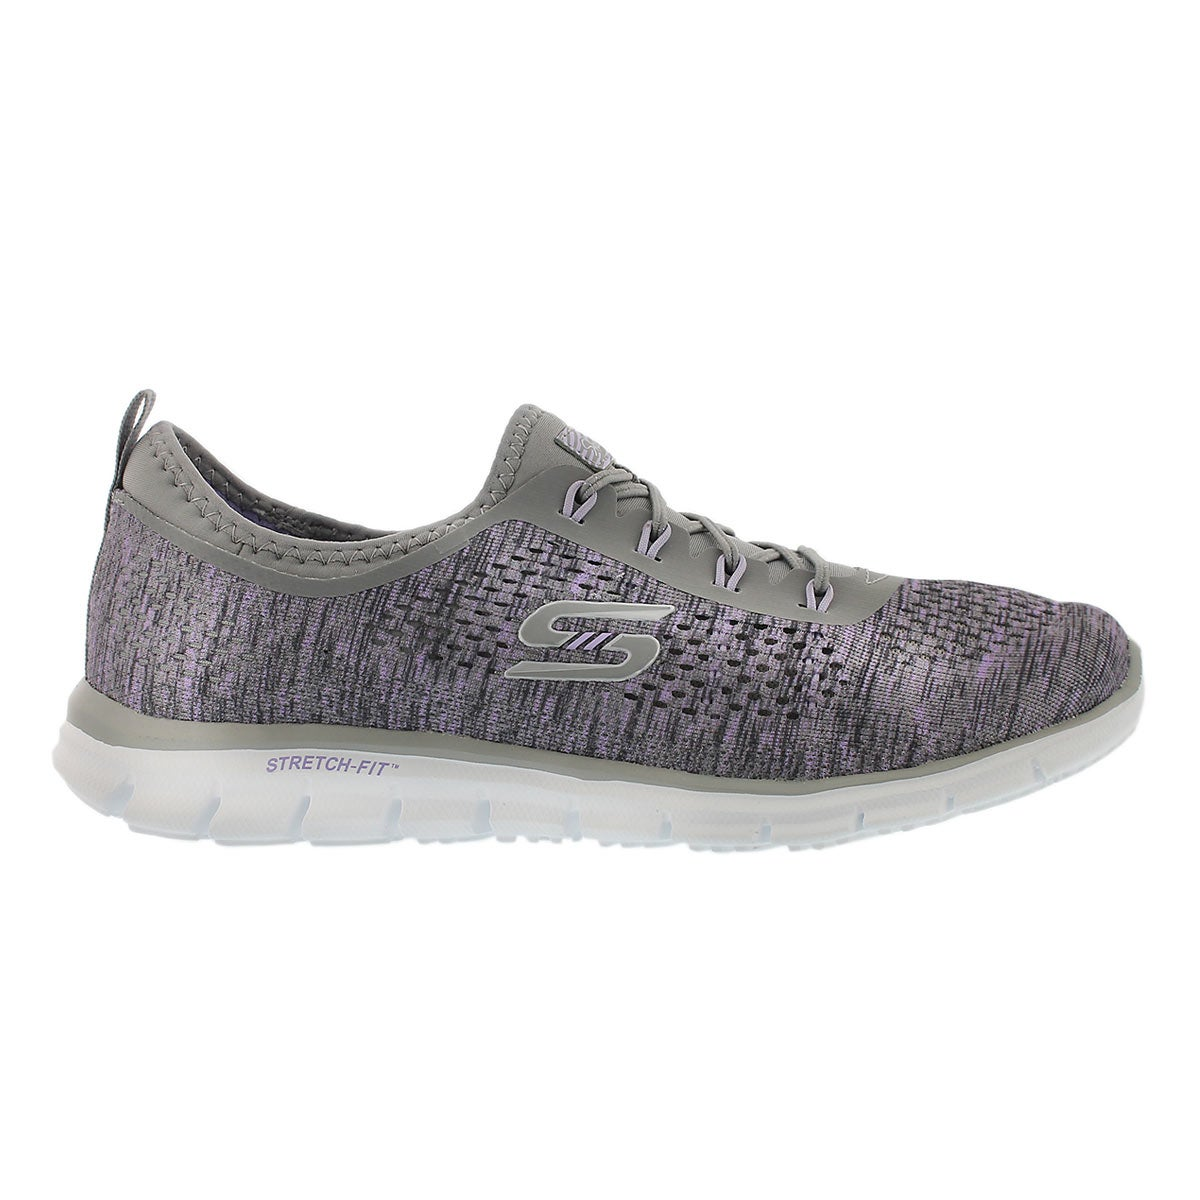 Lds Deep Space gry/lvndr slip on runner